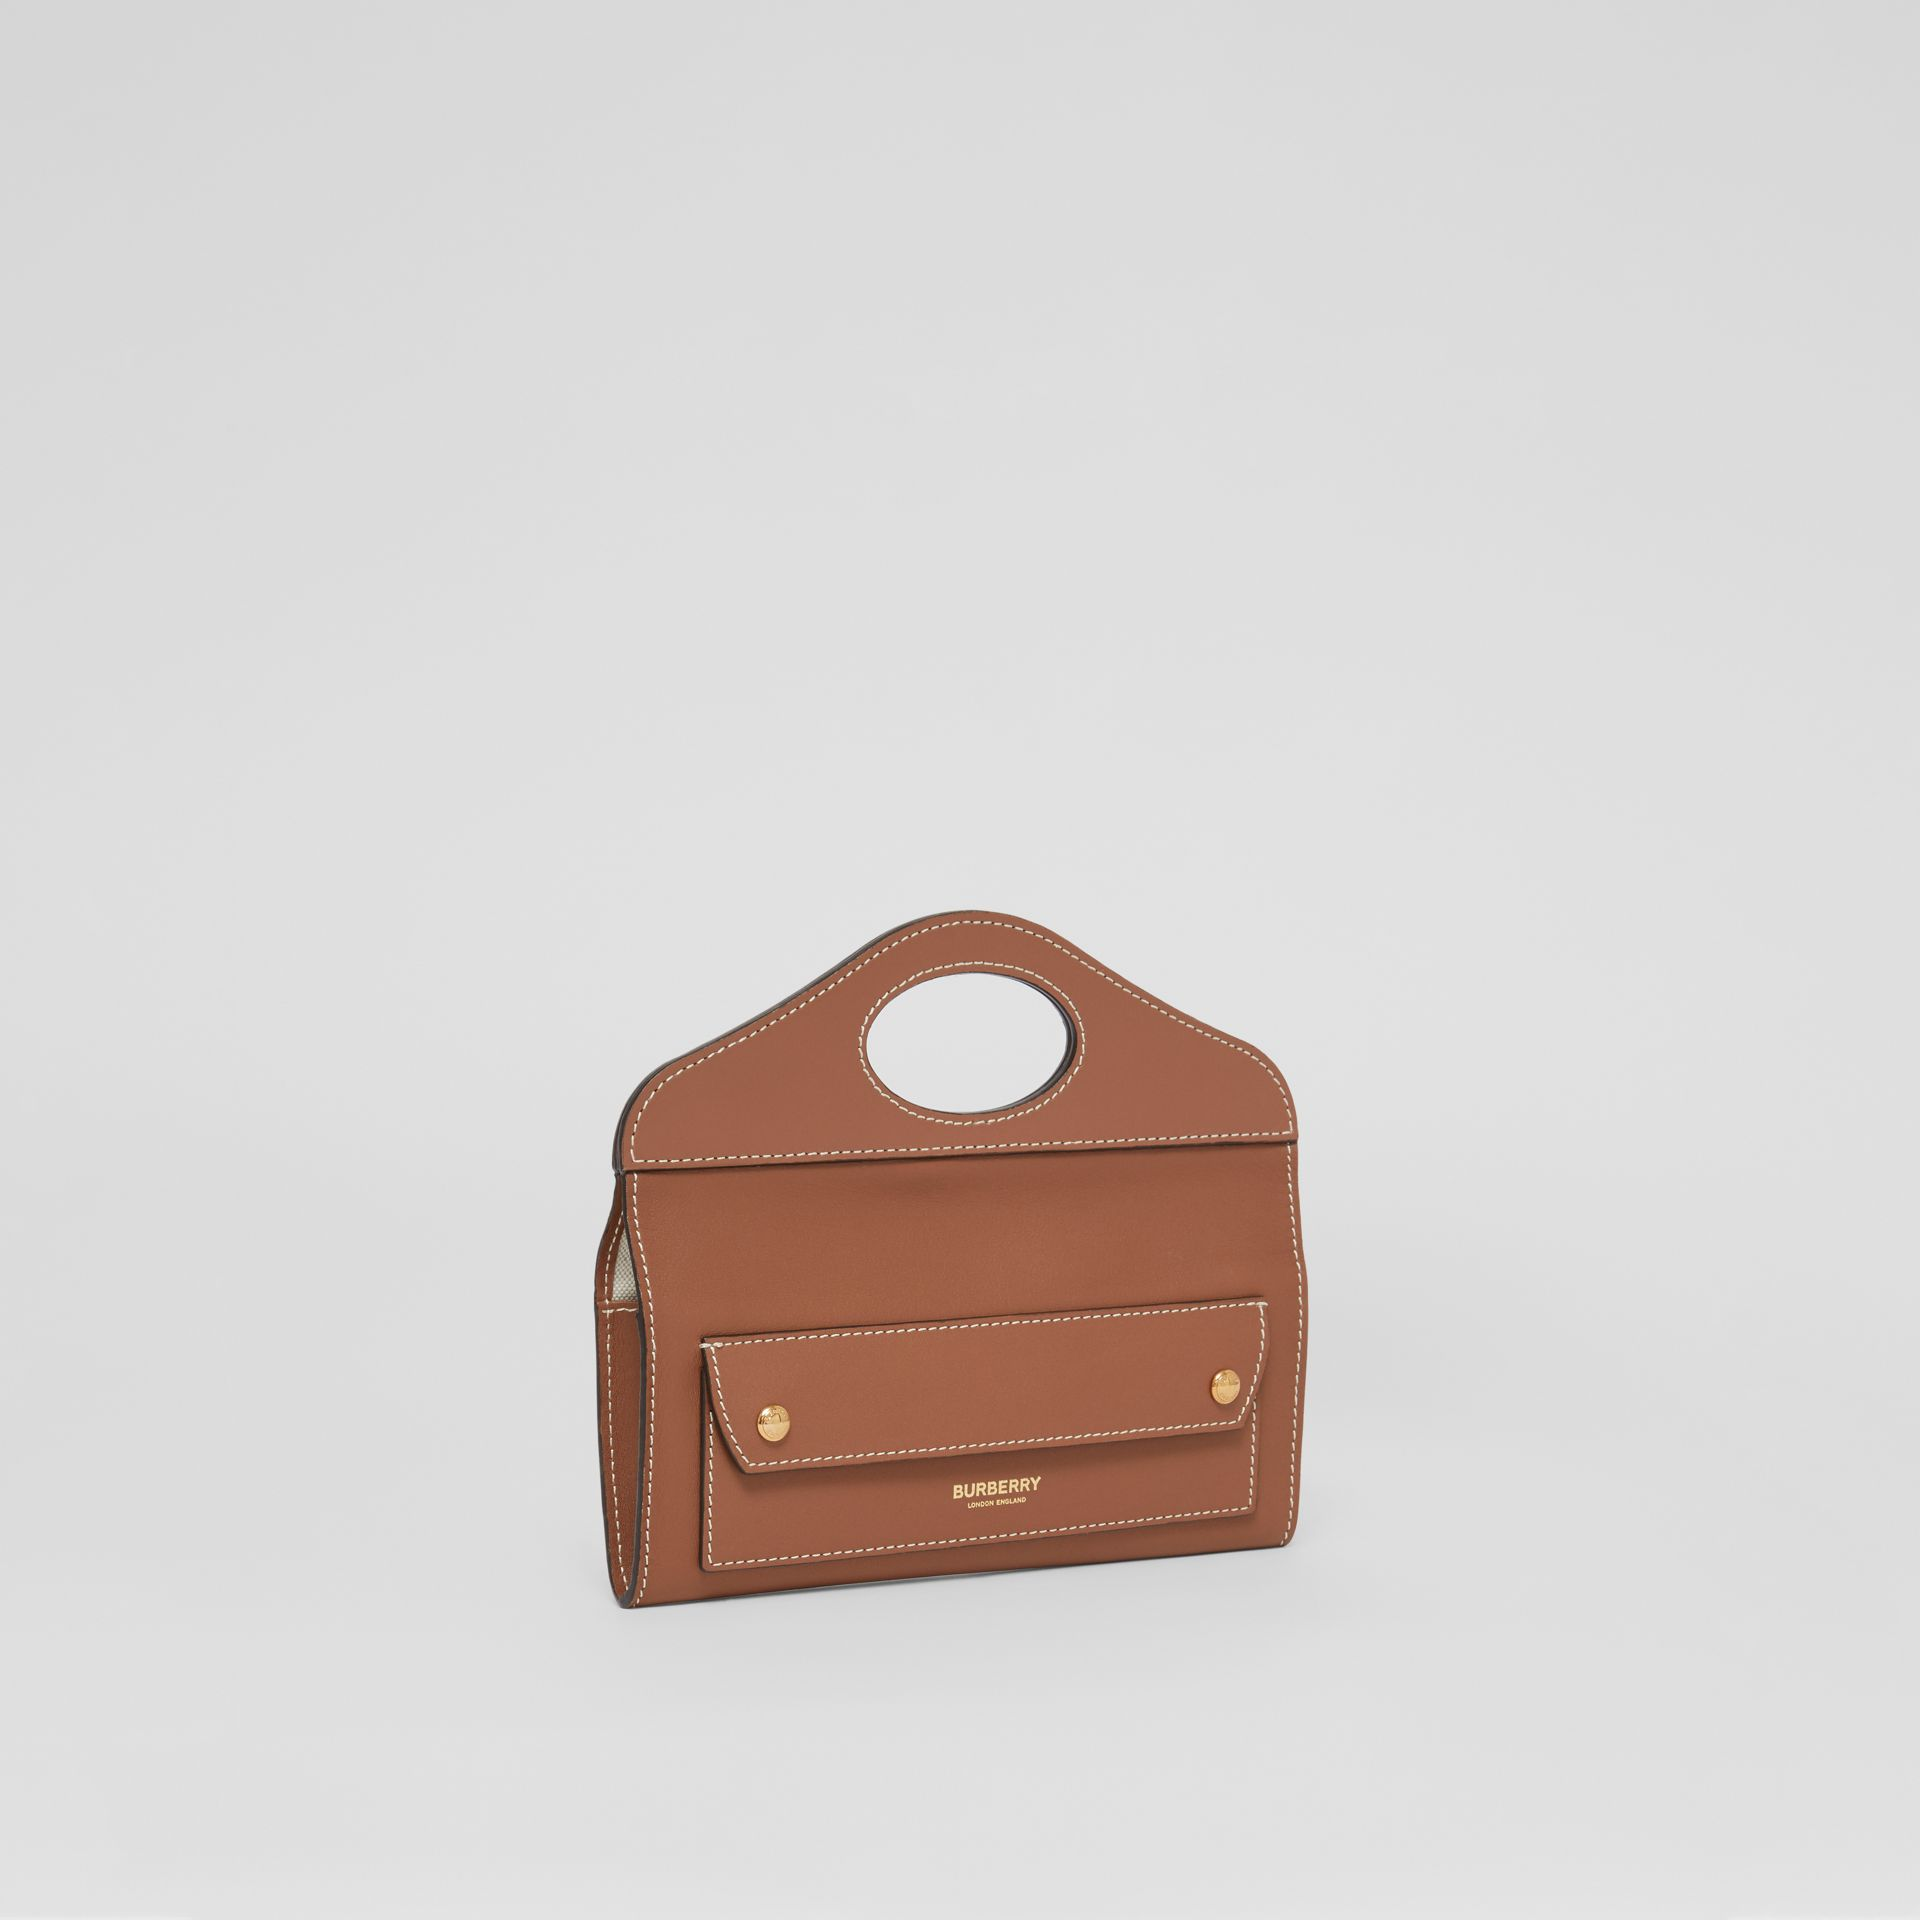 Mini Topstitched Lambskin Pocket Clutch in Malt Brown - Women | Burberry - gallery image 6